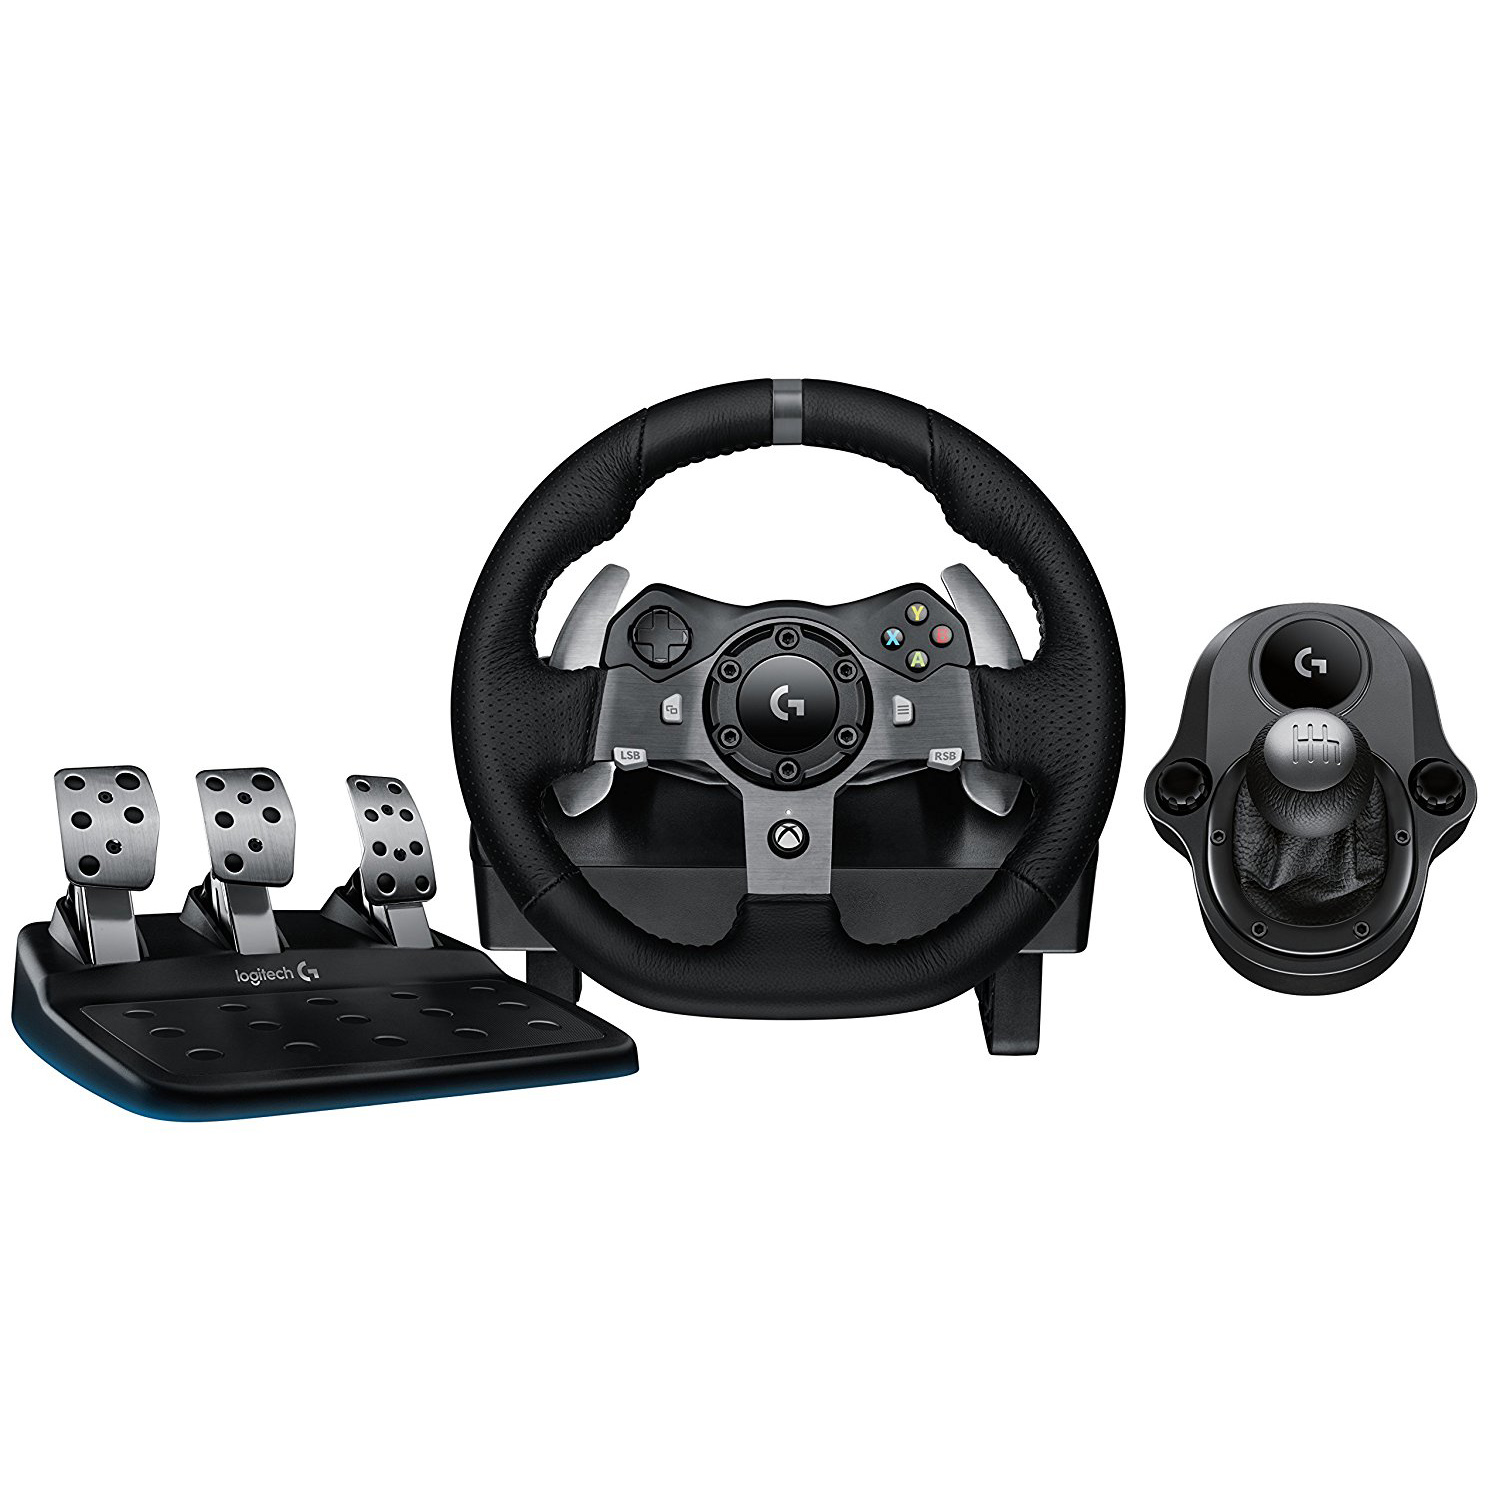 e517b36c12f Details about Logitech G920 Driving Force Racing Wheel Dual Motor Force  Feedback with Shifter